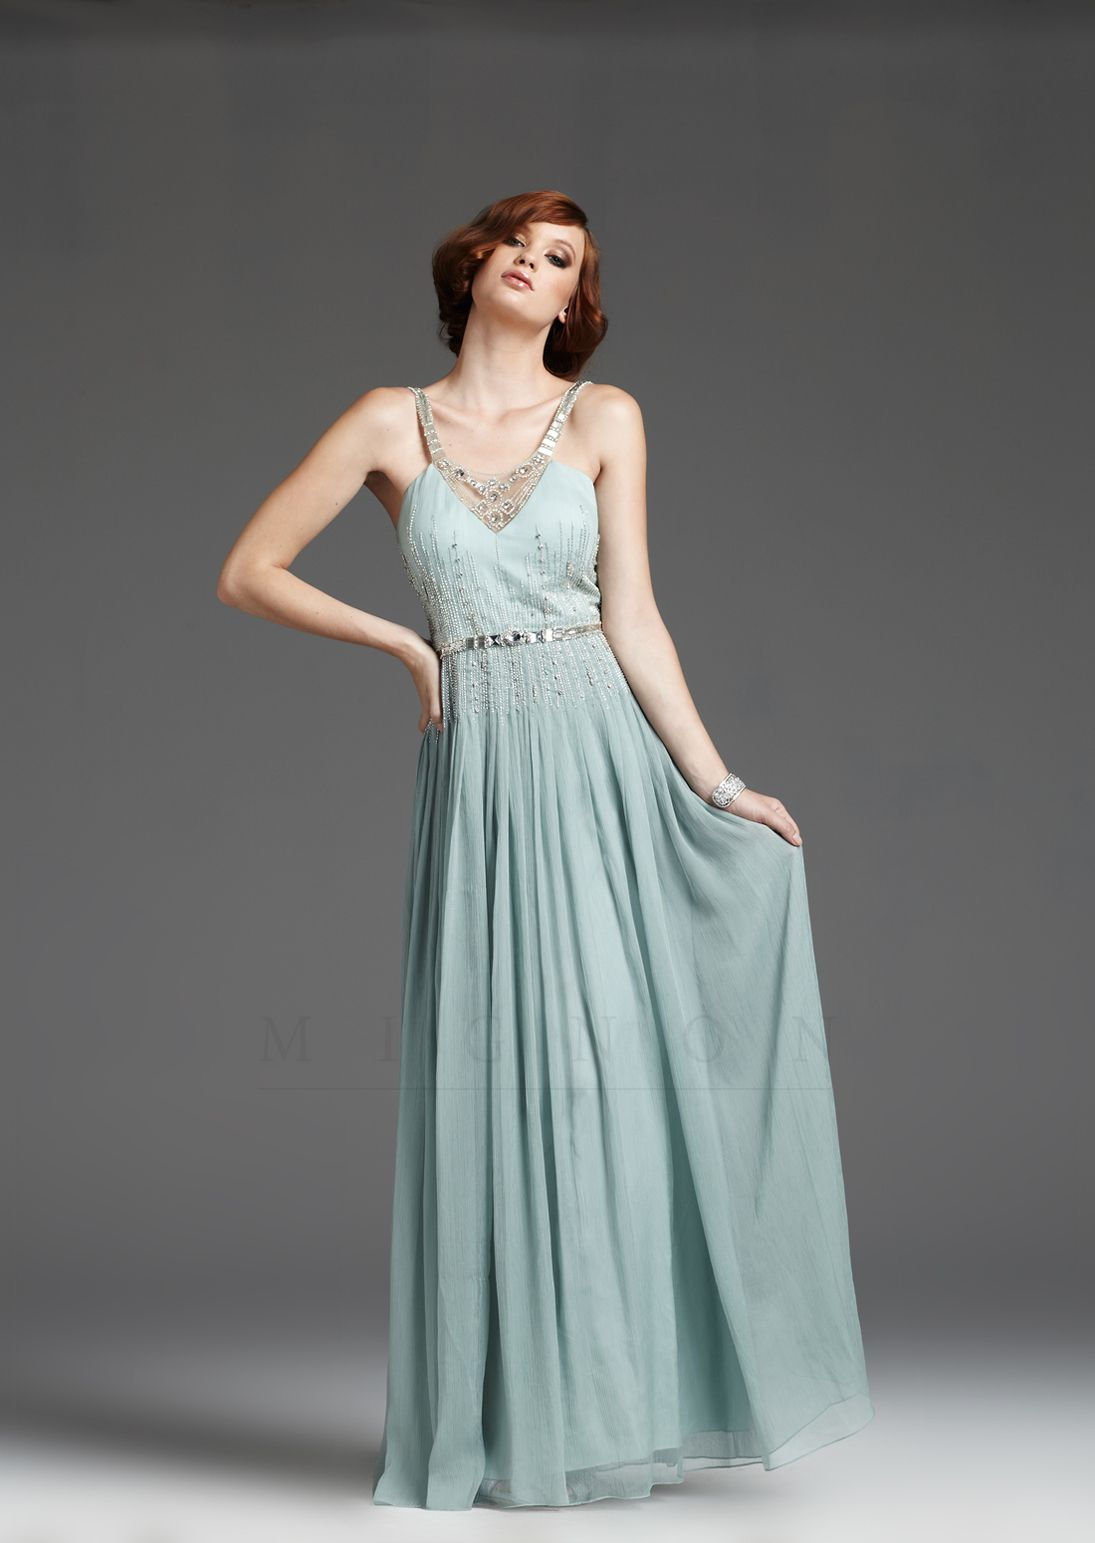 Seamist 1930\'s Style Grecian Silver Beaded Elegant Prom Dress ...